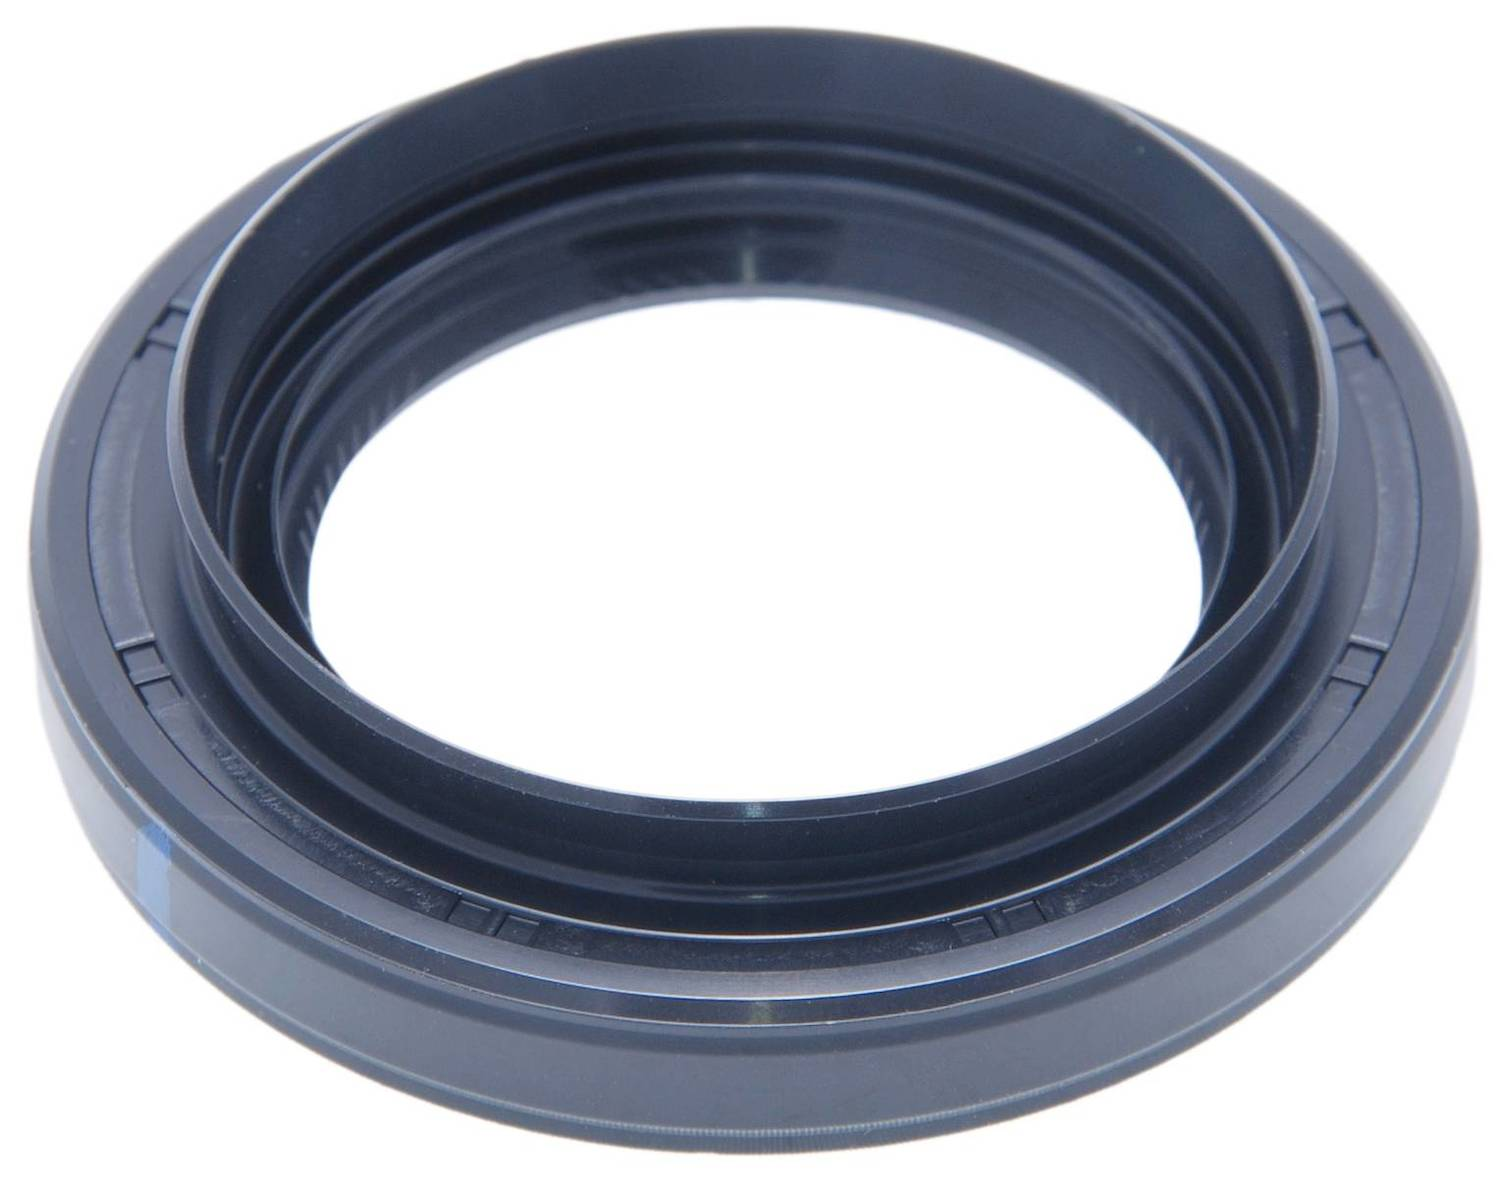 Febest 2009 Toyota Camry - Oil Seals FEBEST # 95HBY-42650915C OEM # 90311-42046 at Sears.com